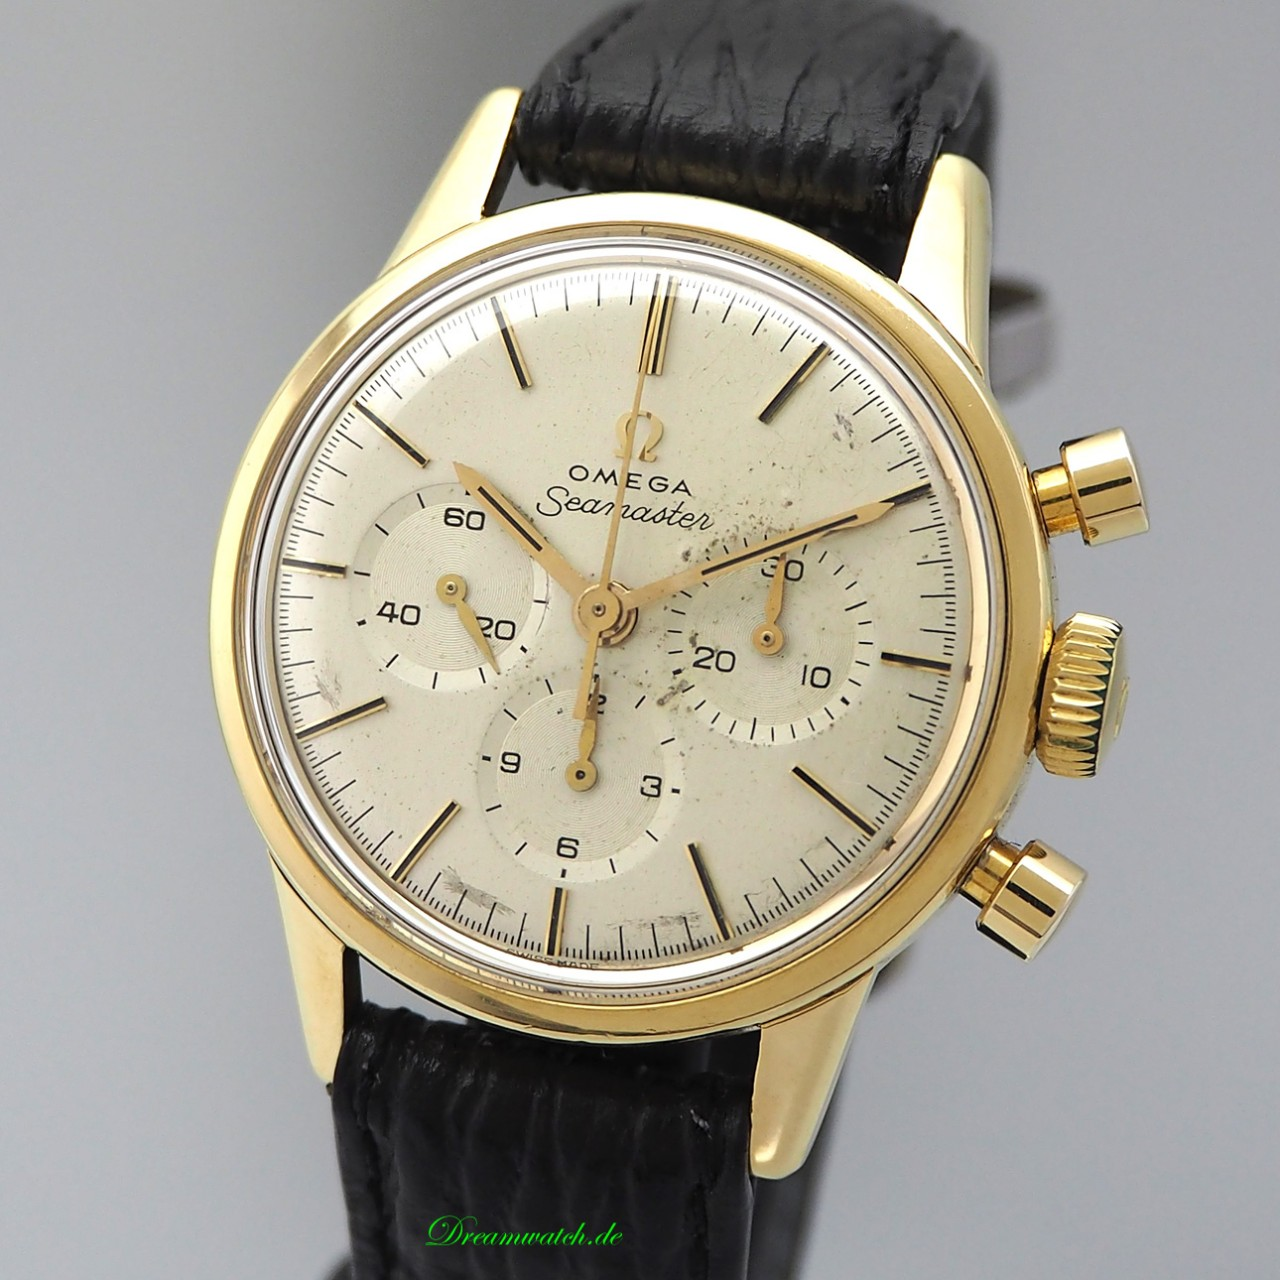 Omega Seamaster Vintage Chronograph 14904/ Cal. 321 -18k/750 Gold from 1962